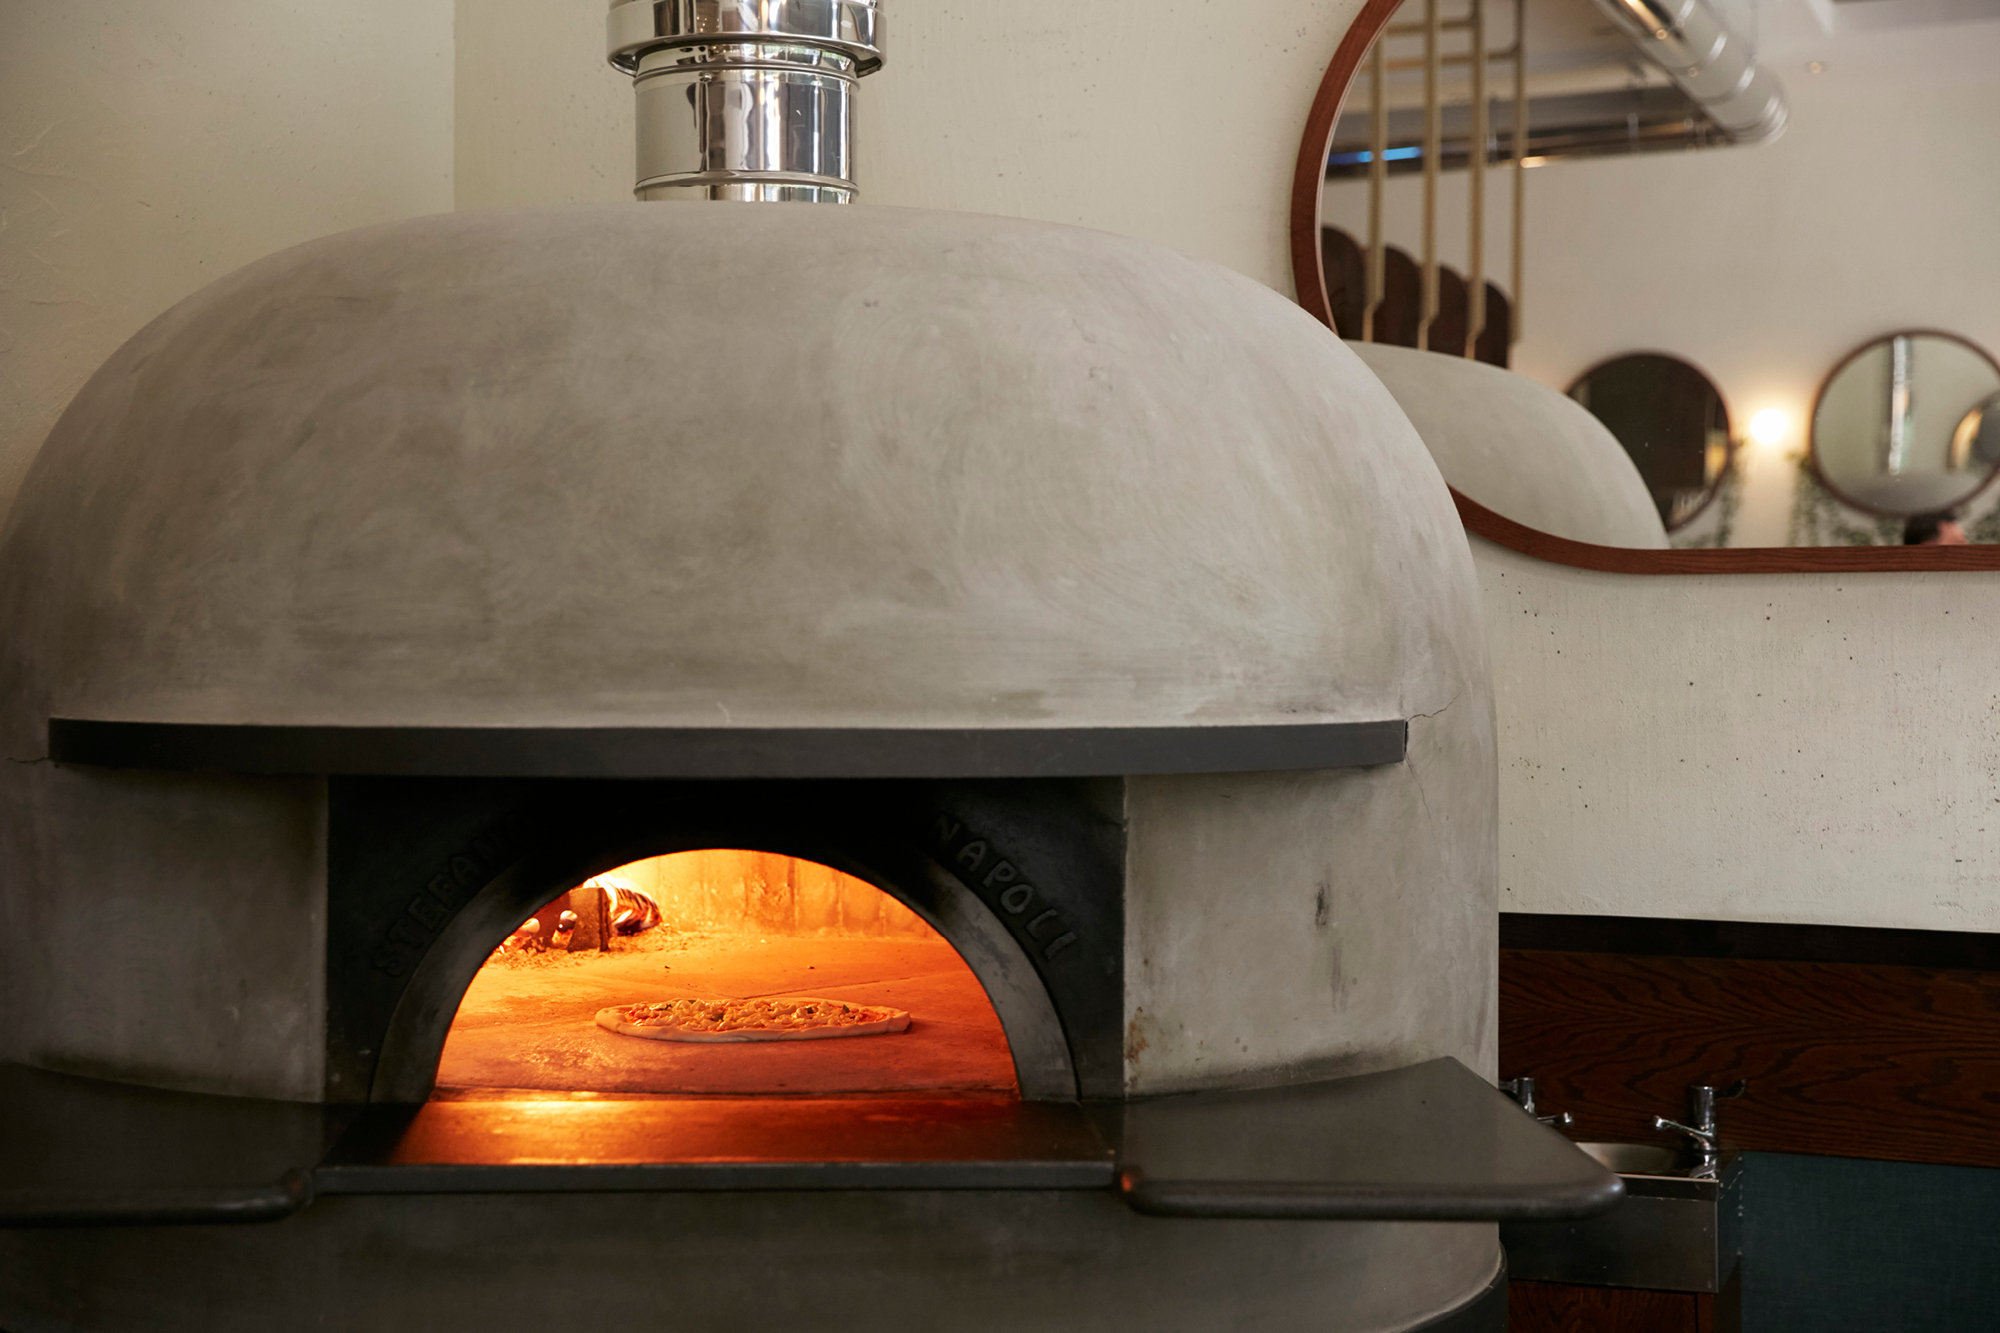 'O ver St James's pizza oven